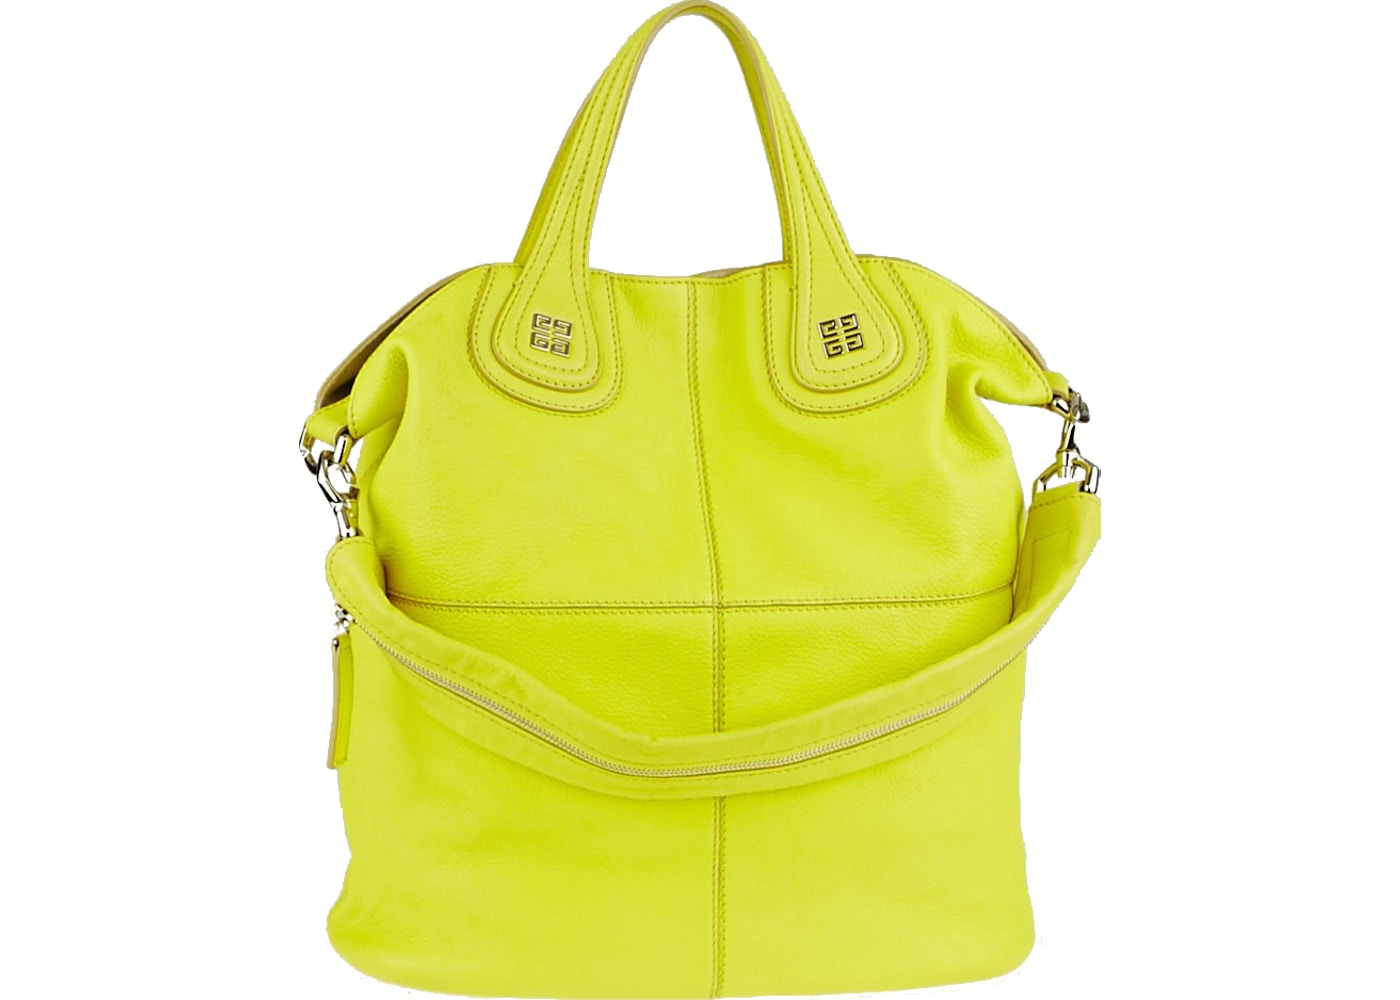 c73bc00157 Givenchy Nightingale Tote North South Goat Leather Bright Yellow. North  South Goat Leather Bright Yellow